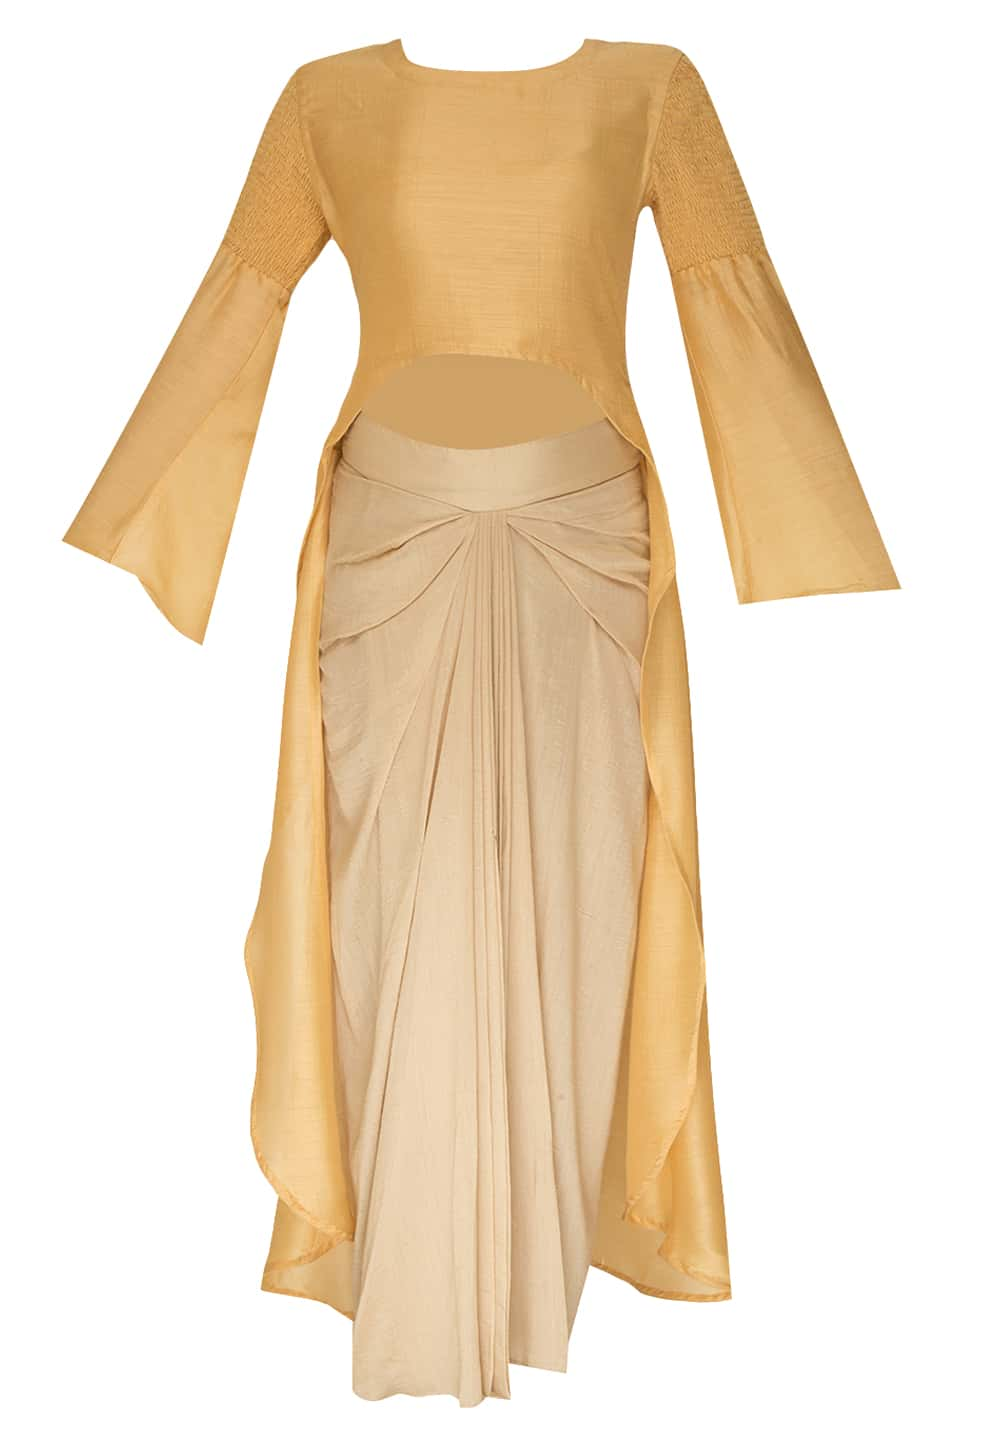 a1a8ccb54e7103 Mustard high low kurta with dhoti skirt available only at IBFW